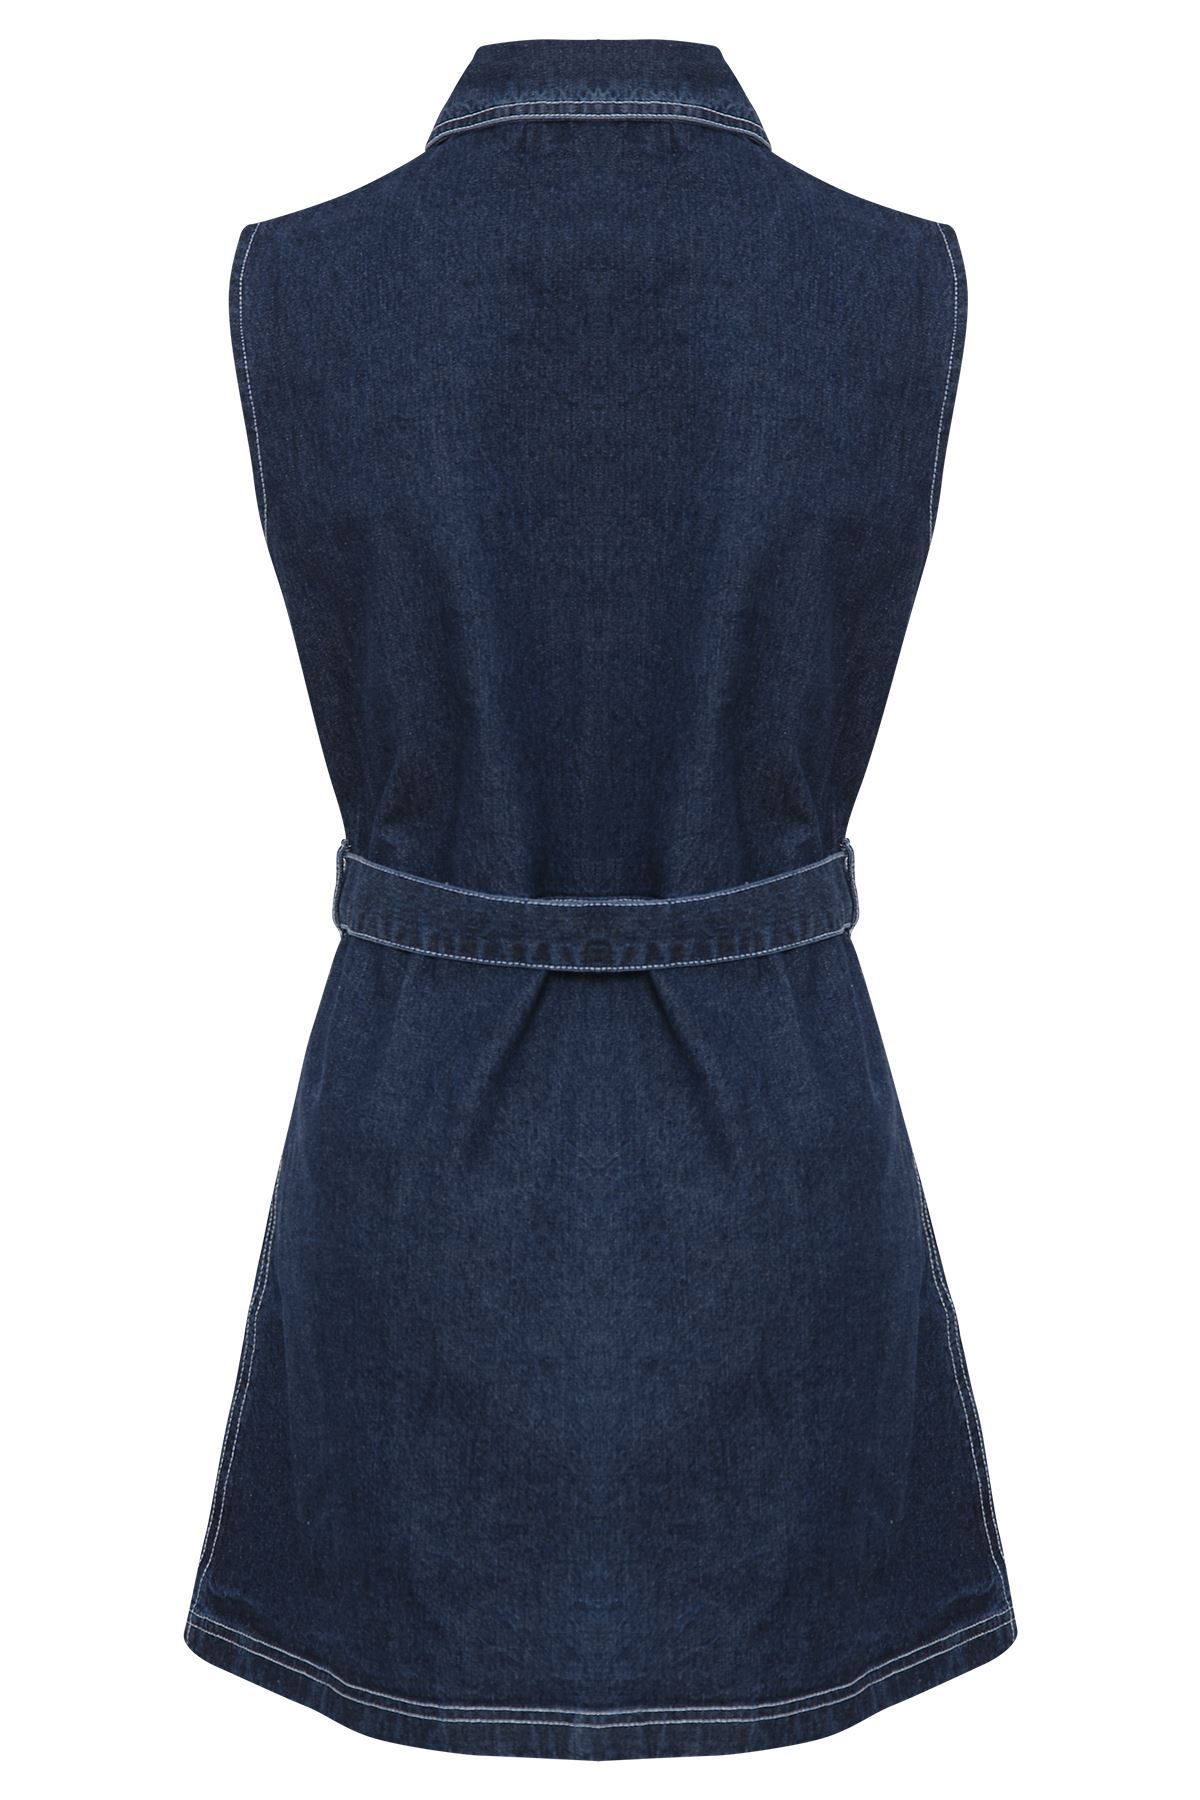 Unique Womens Sleeveless Denim Dress  Bella Forte Glass Studio